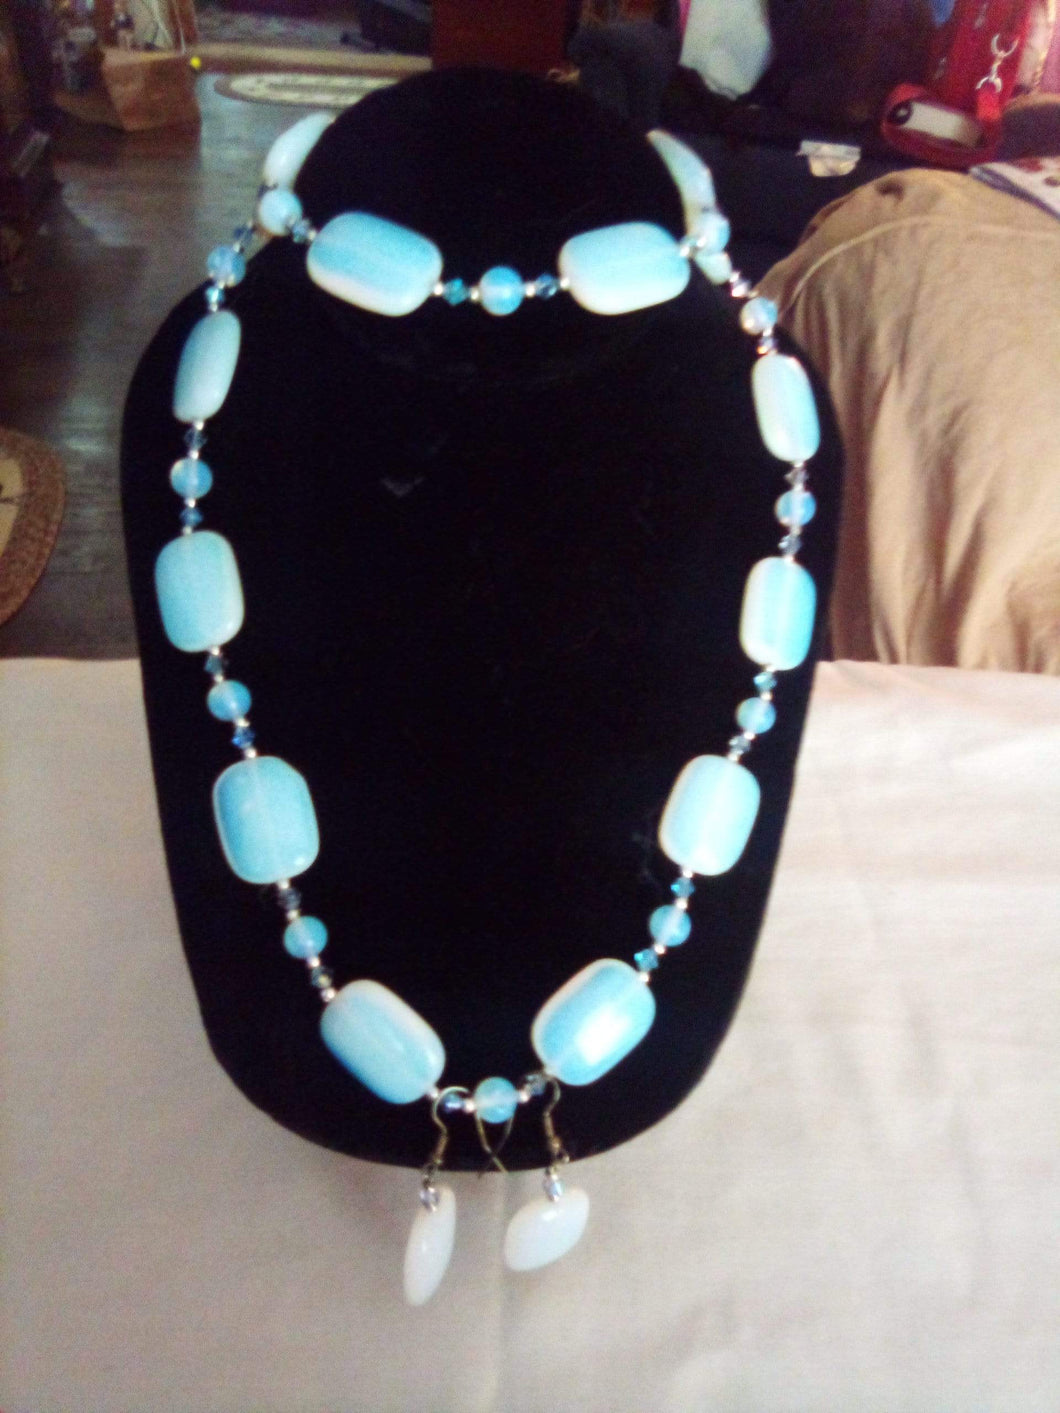 A rare opalite necklace, bracelet, and pierced earring set - B&P'sringsnthings